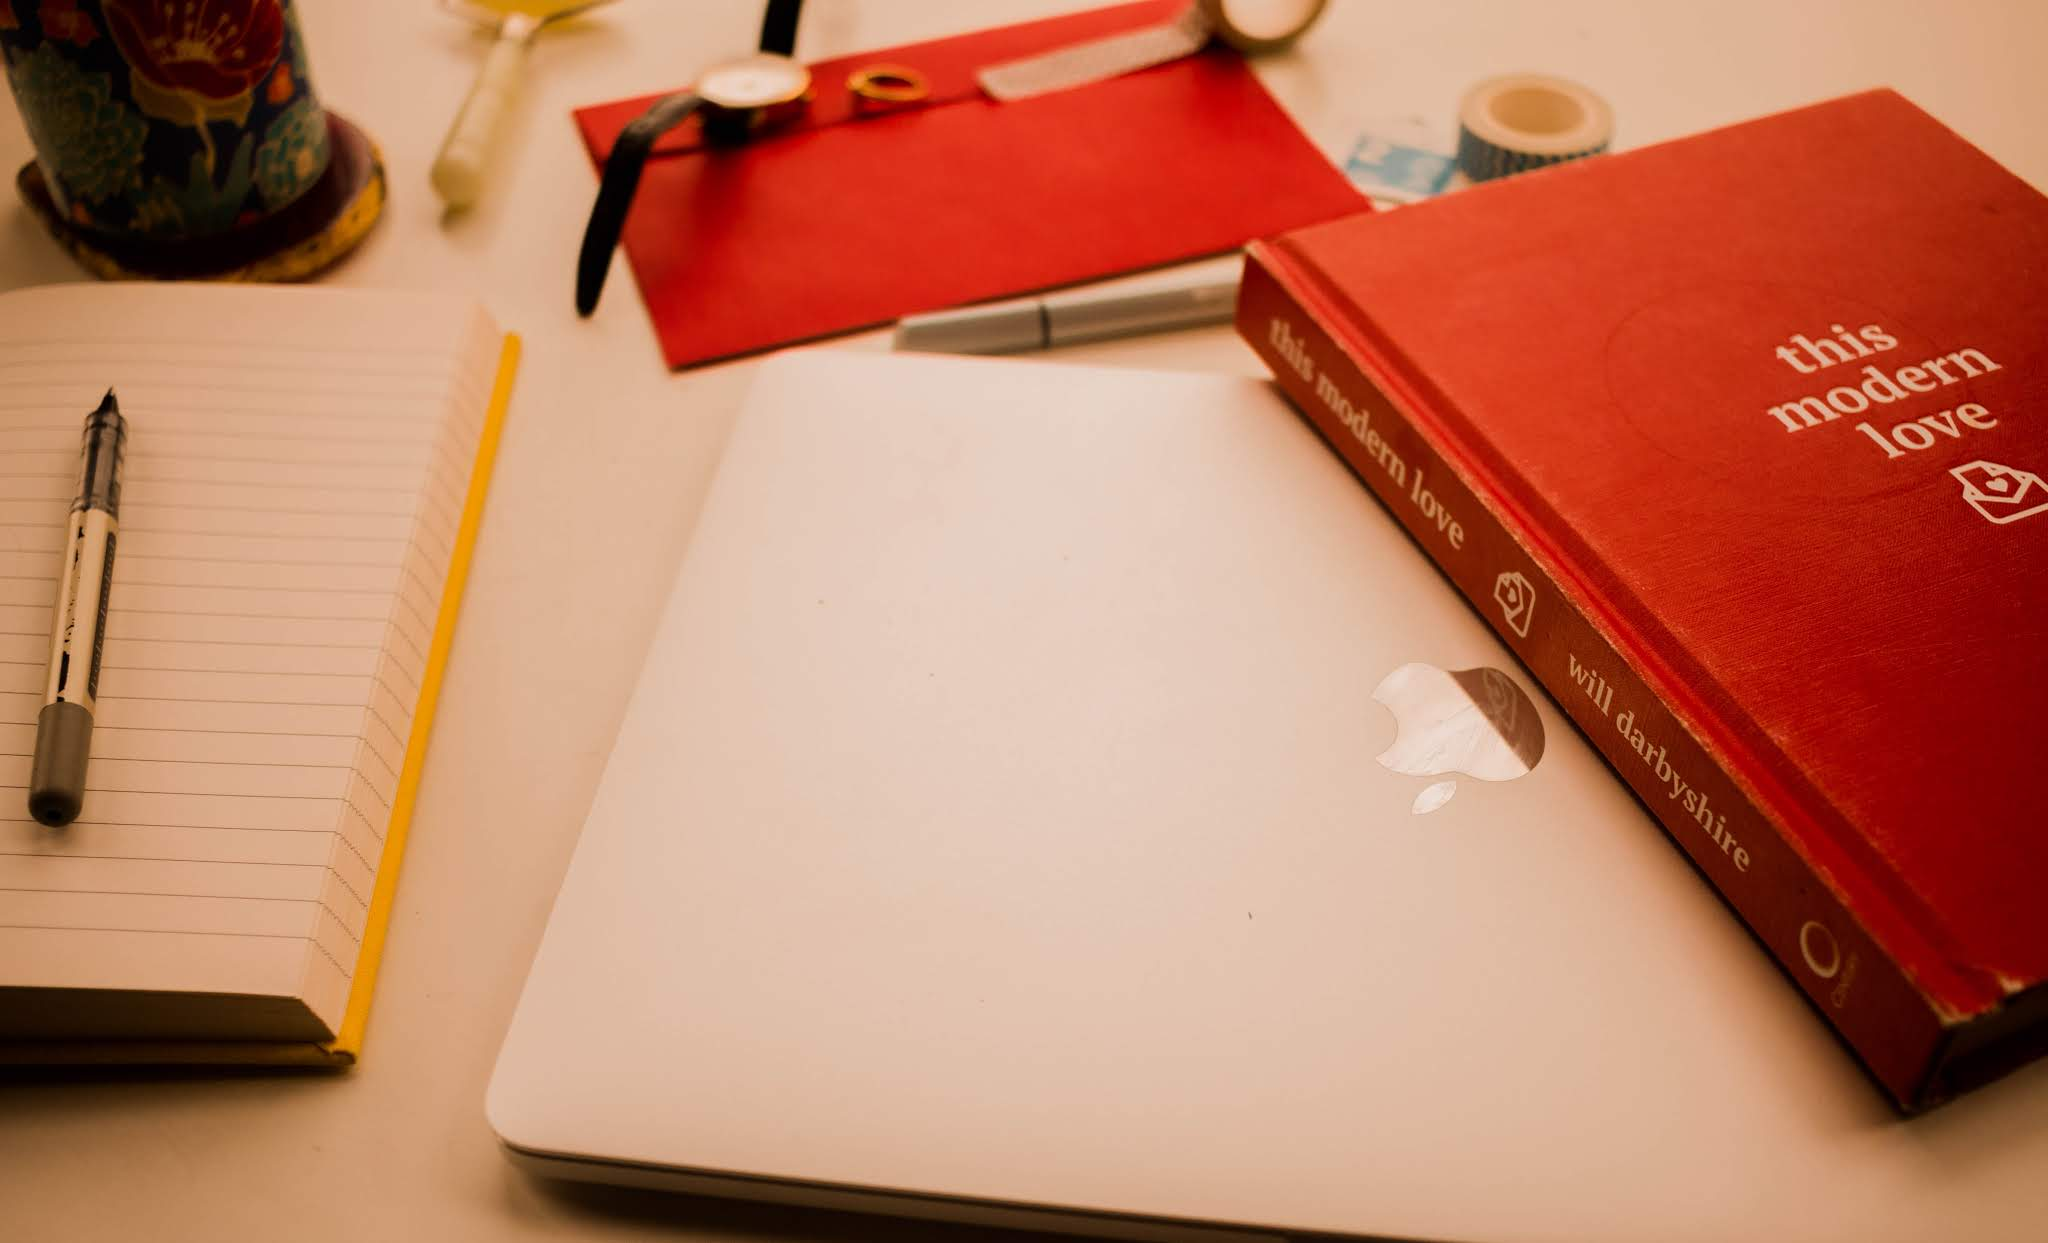 Flatlay image: macbook pro, book this modern love, notebook, pen - Newsletter recommdendations blog post